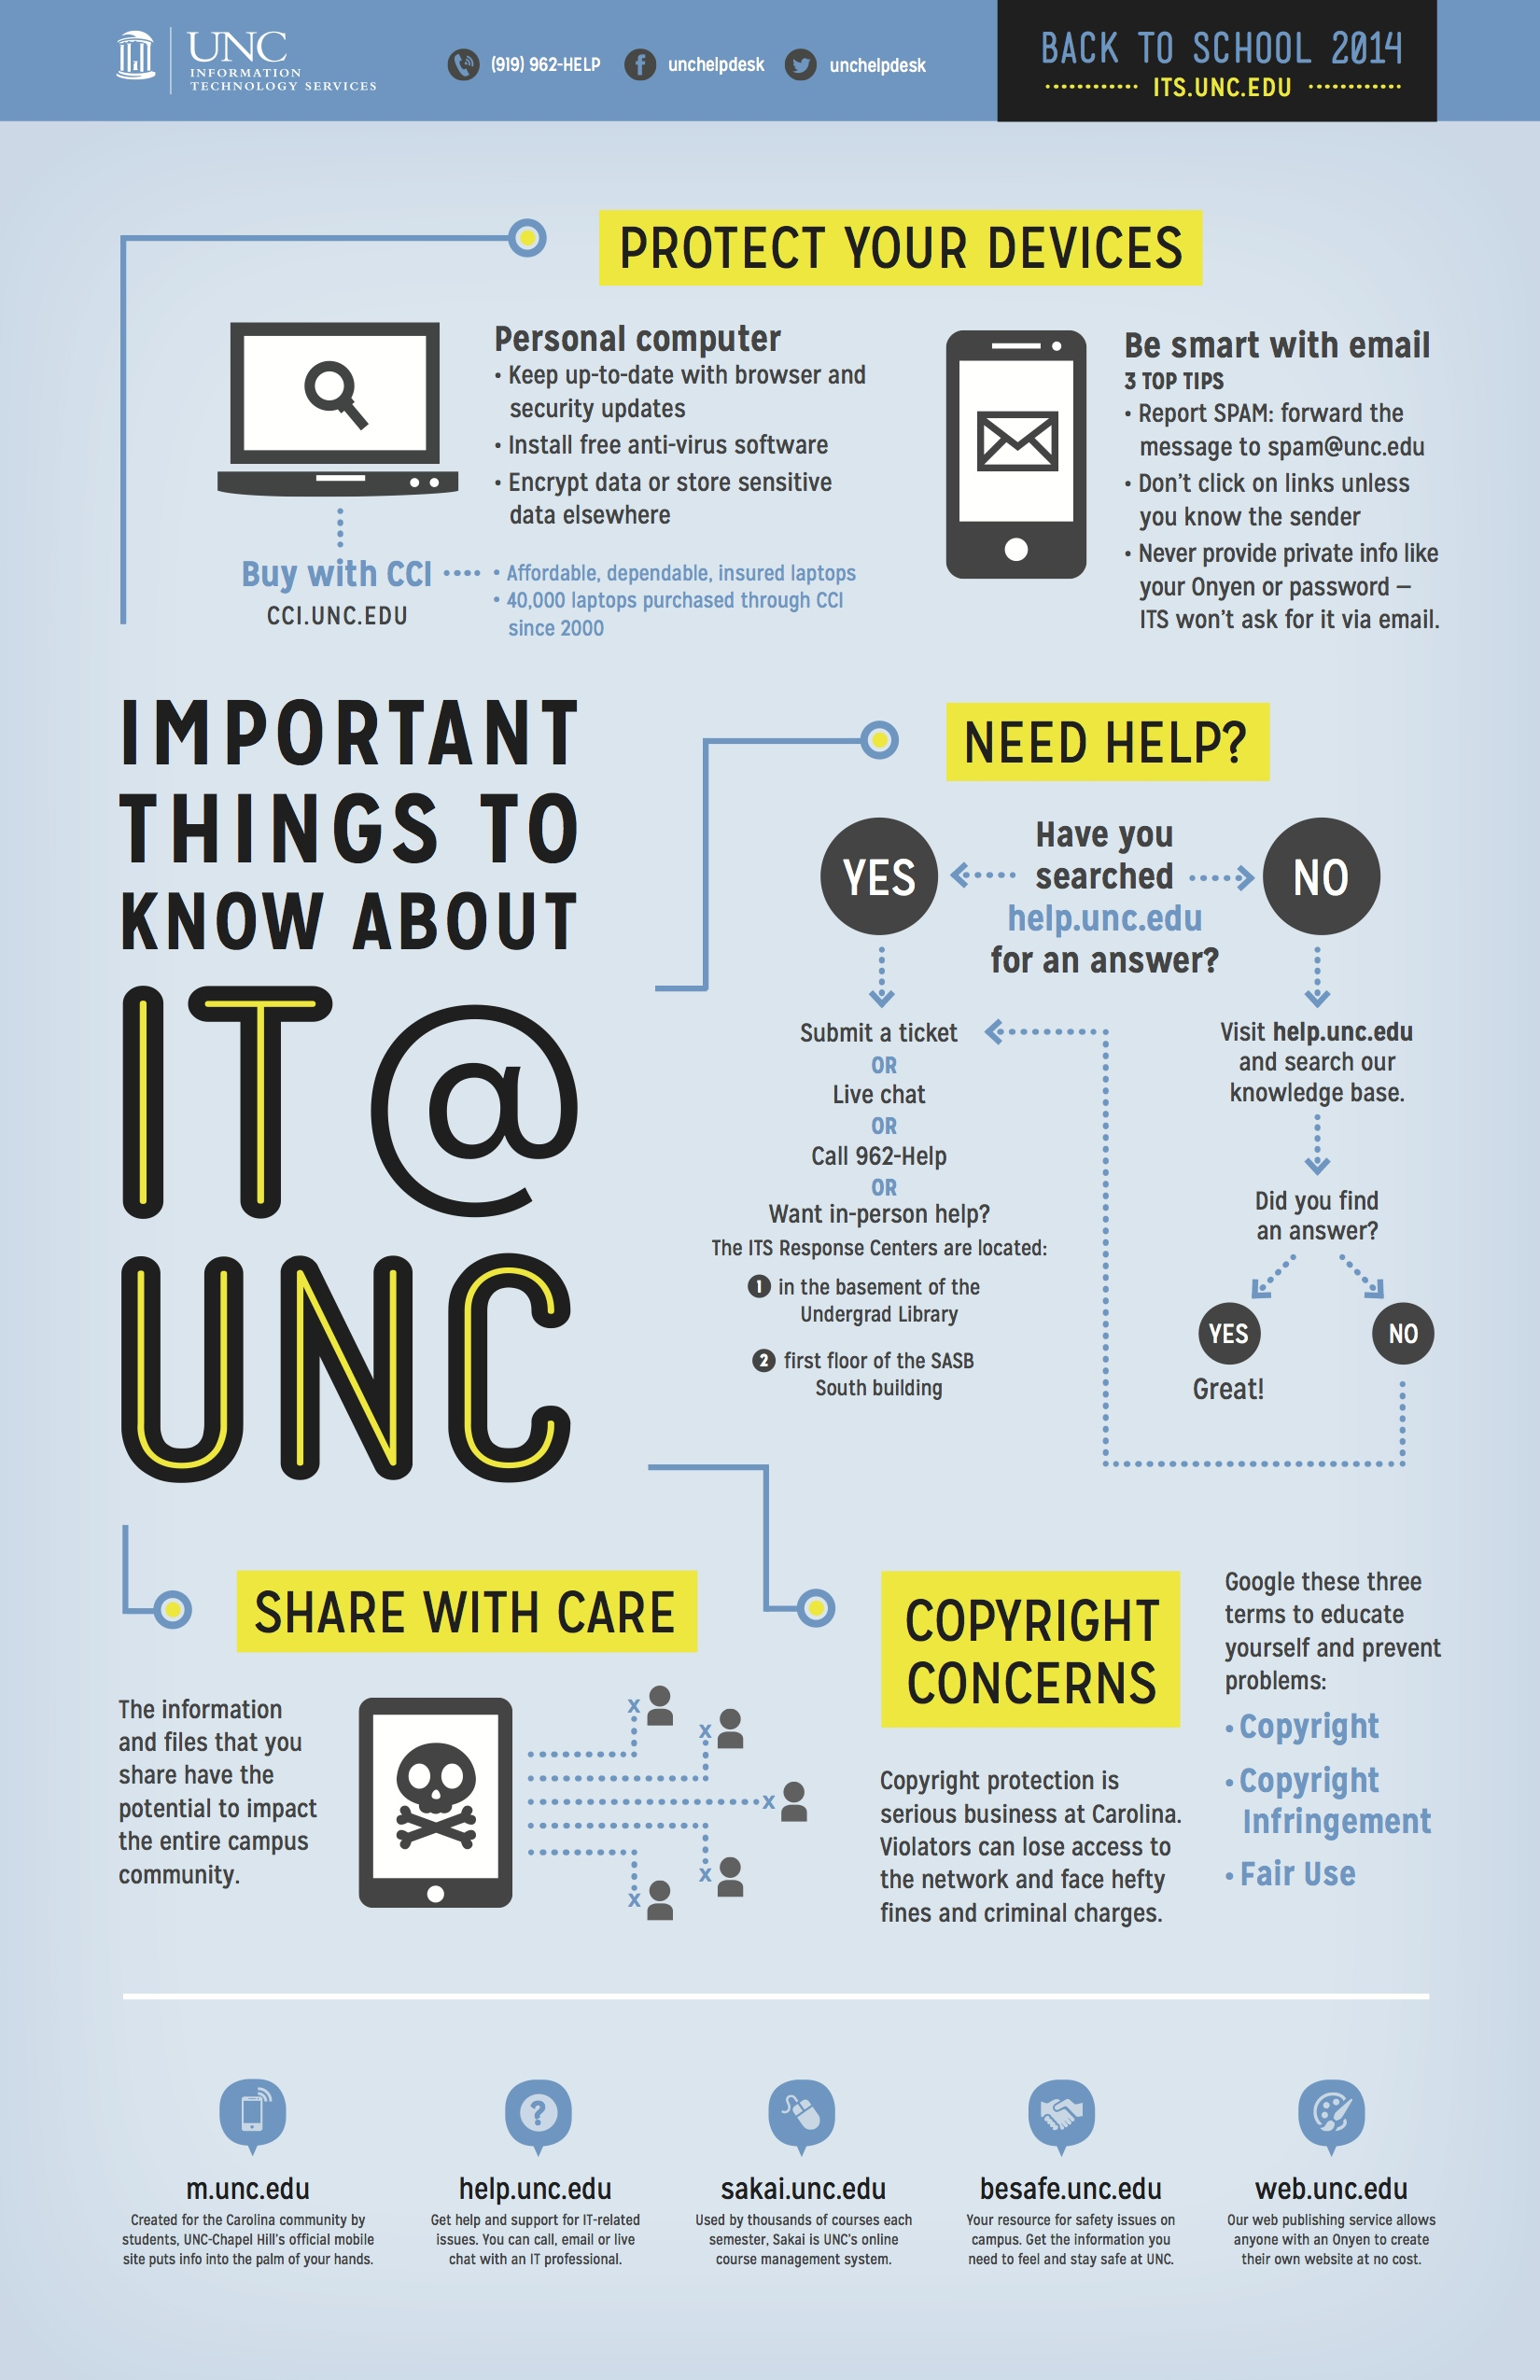 Important things to know about ITS at UNC